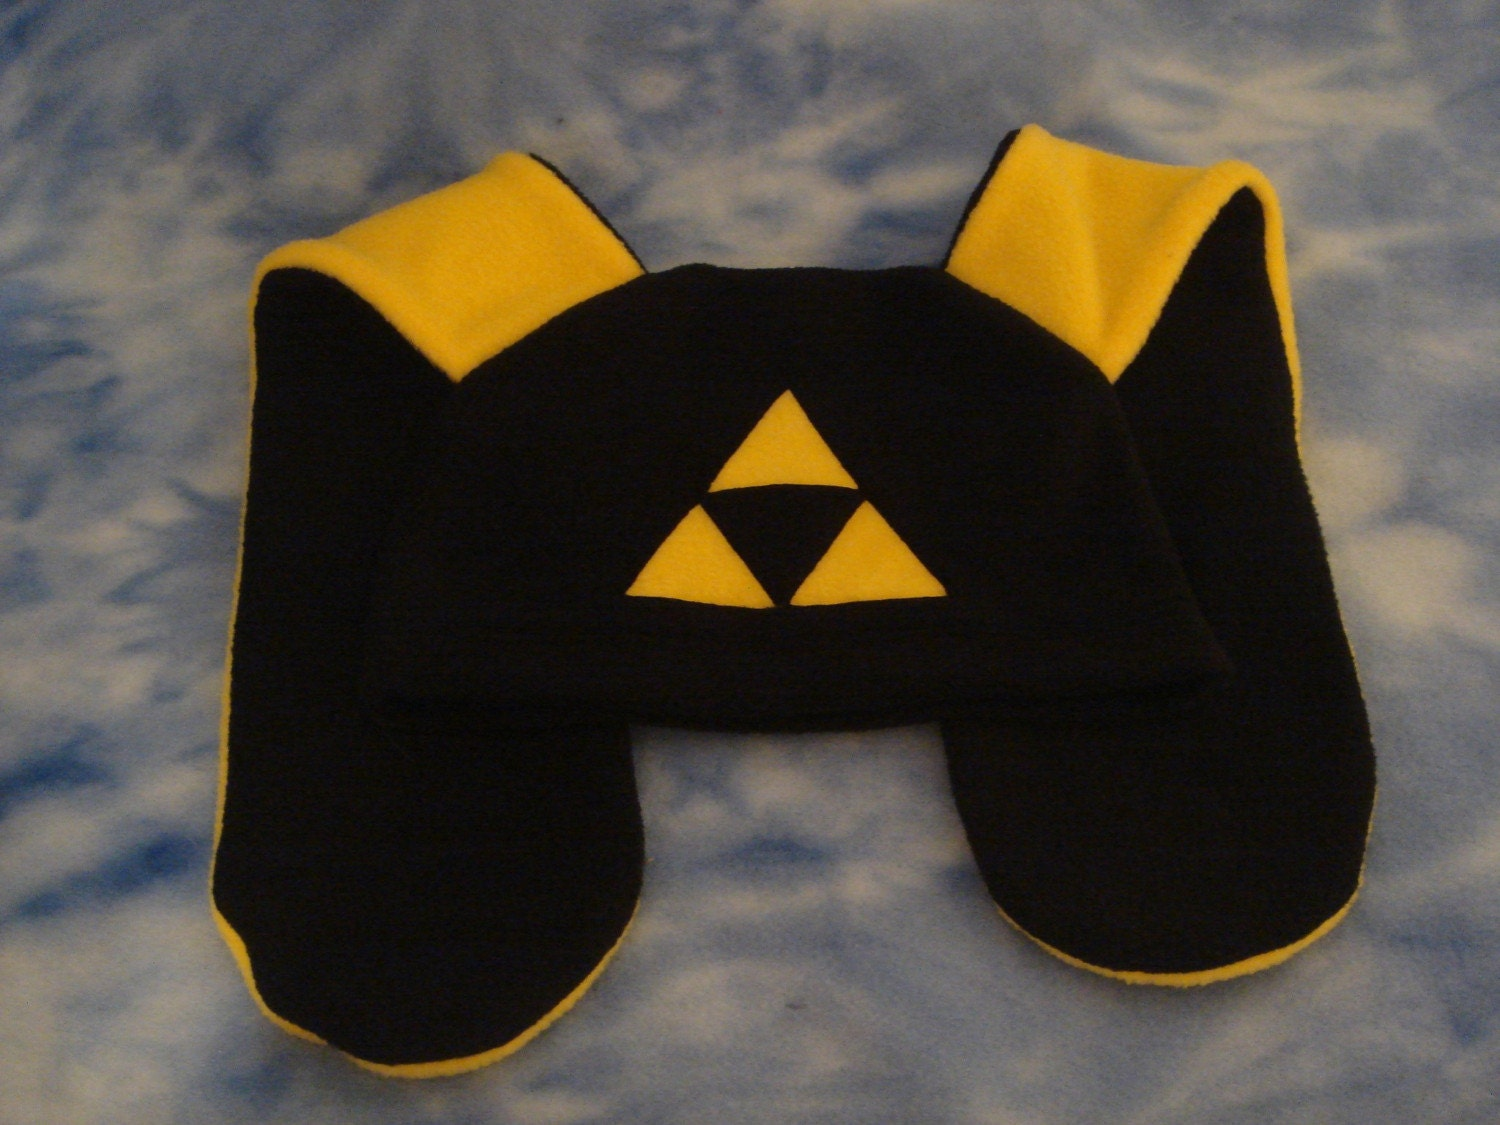 Telling you its a tattoo from the triforce the earthbound tattoo Only a